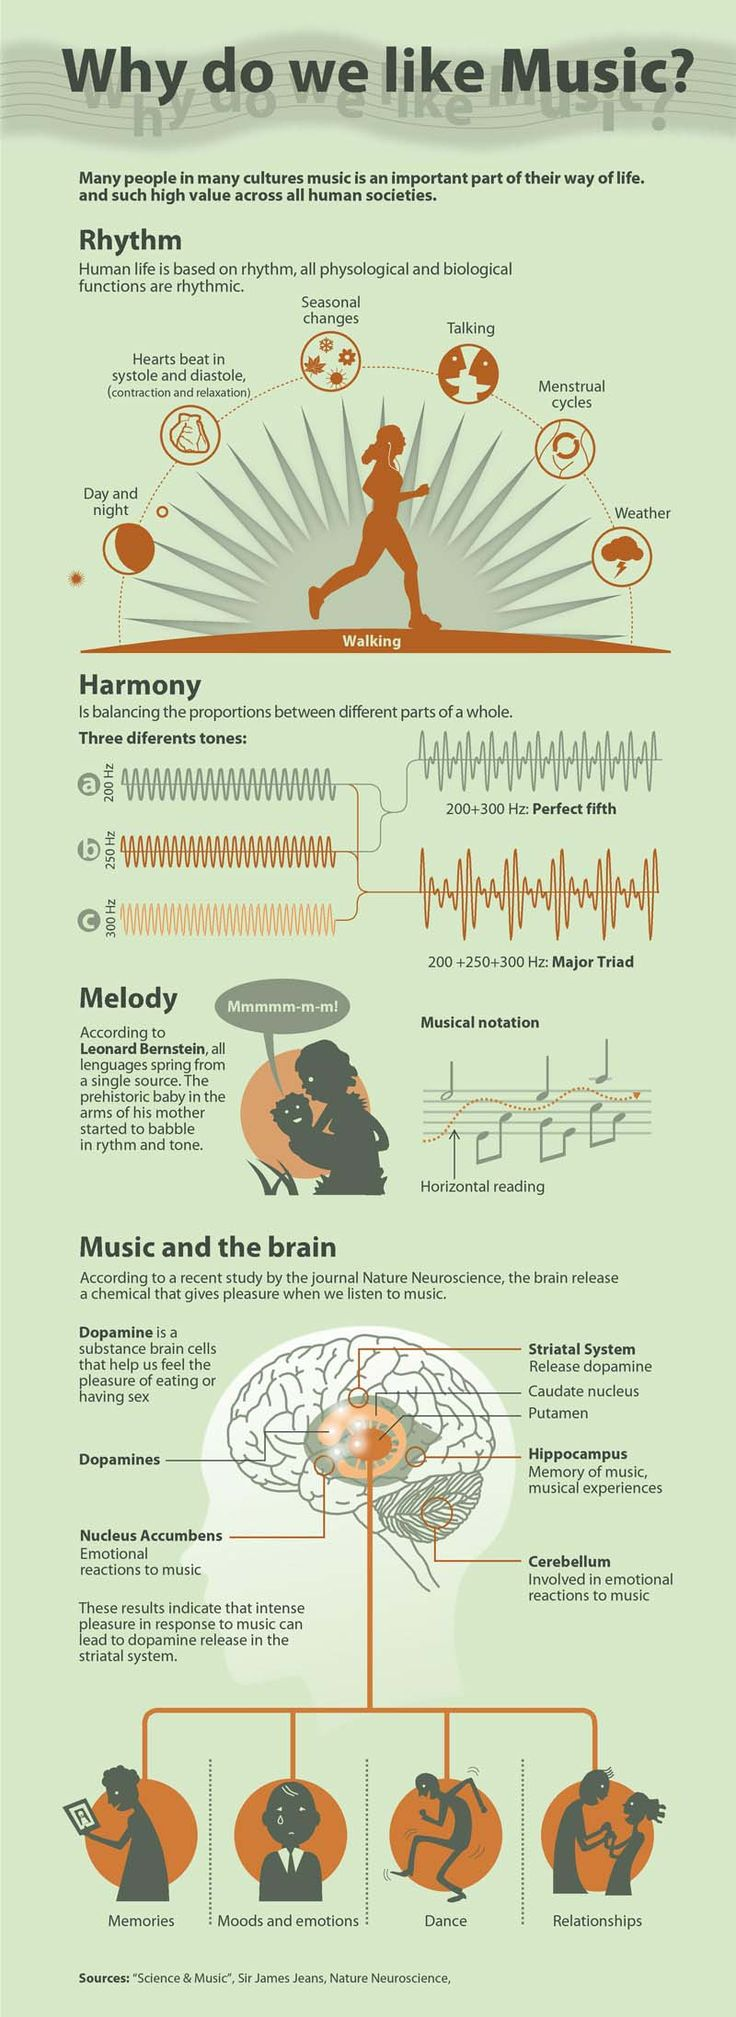 Infographic Why Do We Like Music?Many people in many cultures music is an important part of their way of life and such high value across all human societie